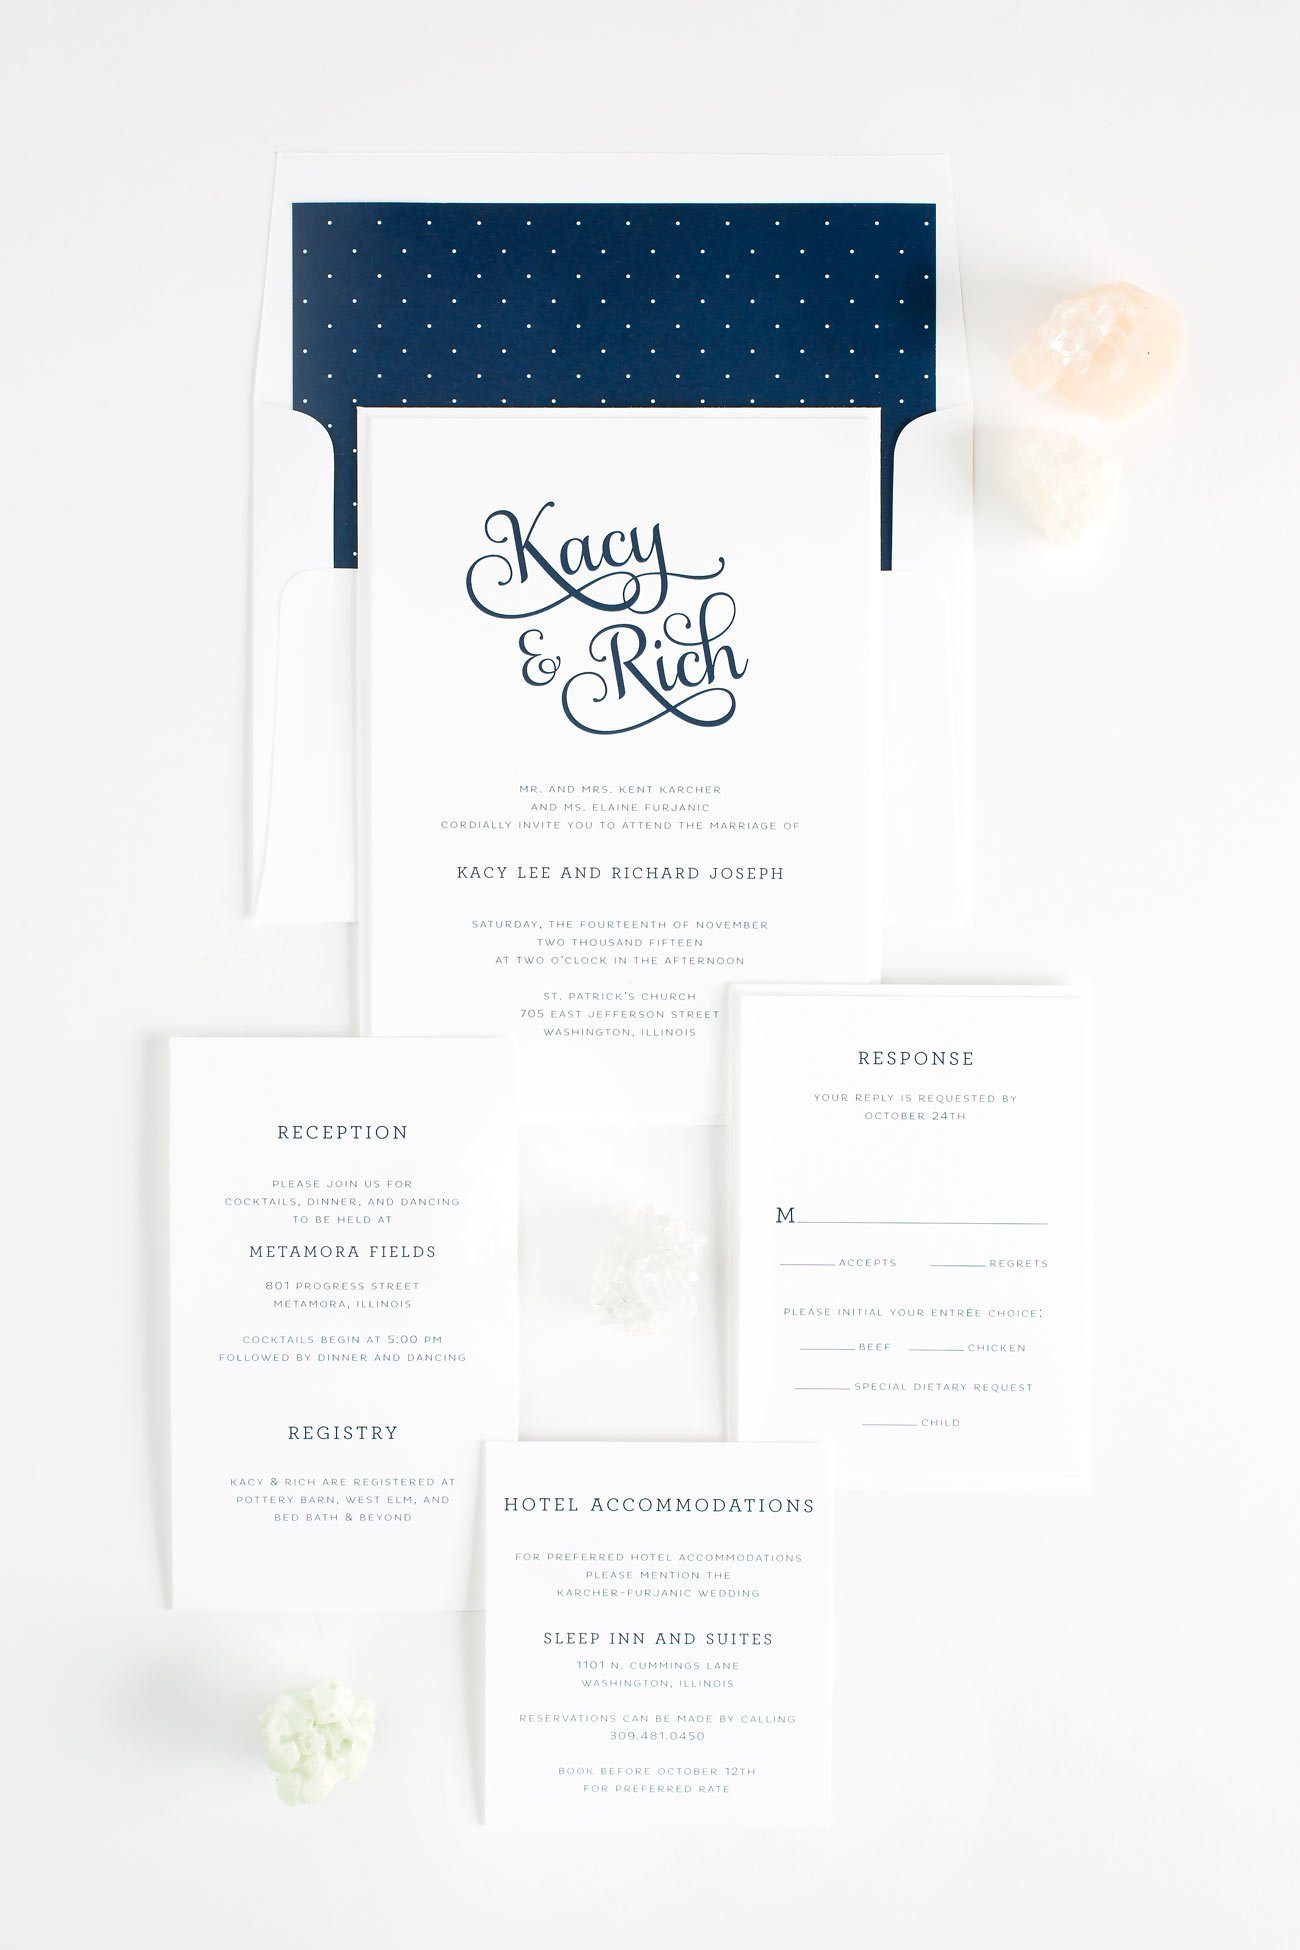 Whimsical Wedding Invitations in Navy with polka dots